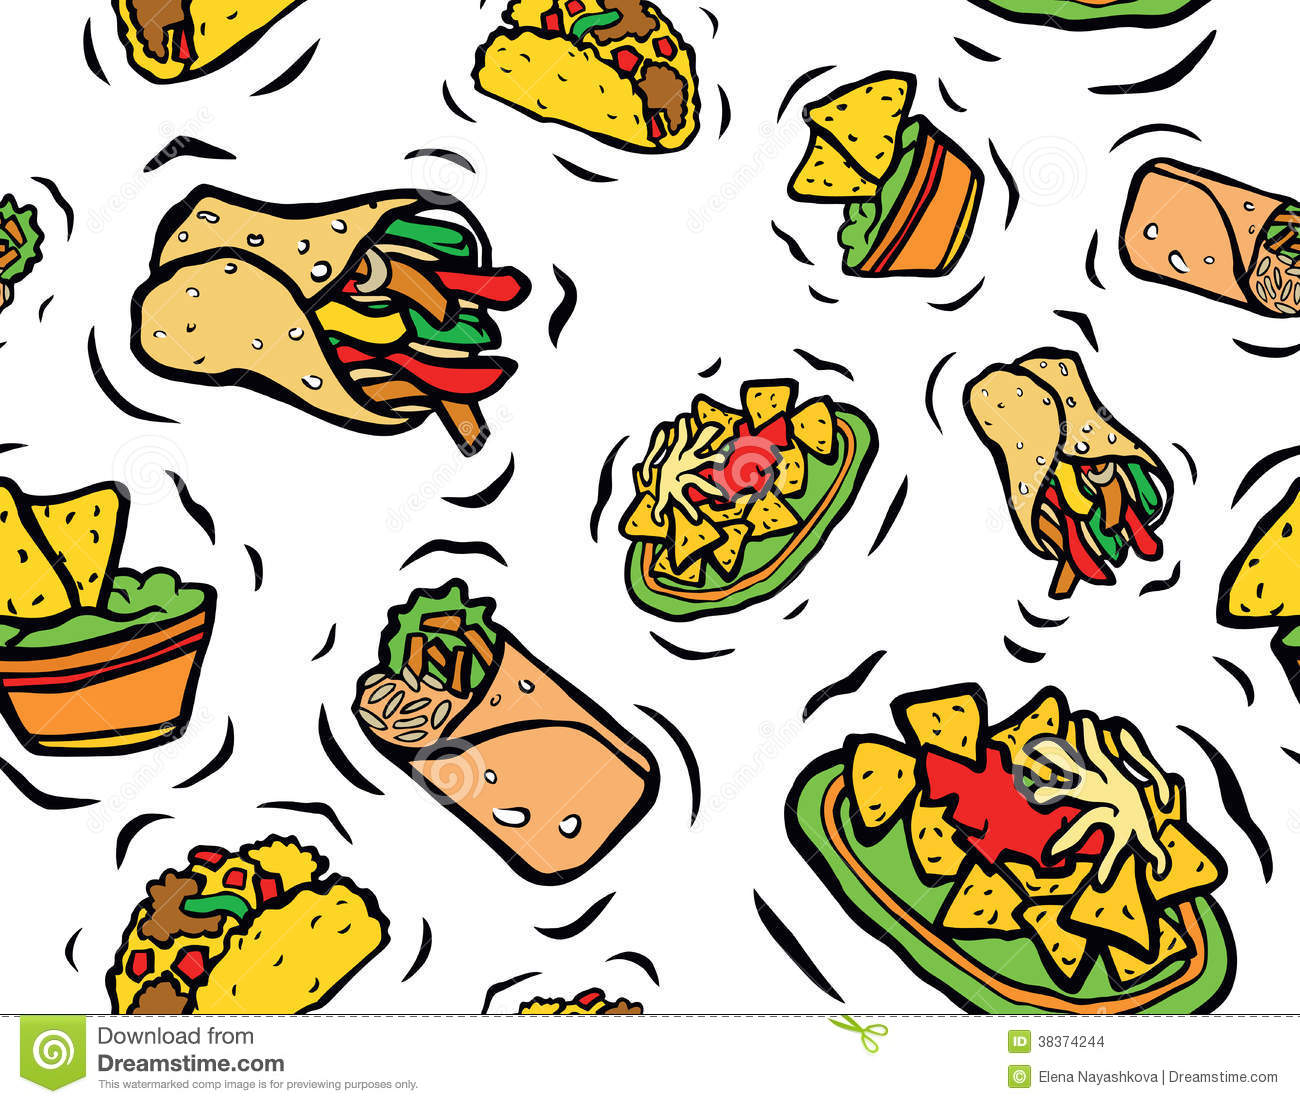 Mexican food cliparts graphic transparent download 11+ Mexican Food Clip Art | ClipartLook graphic transparent download